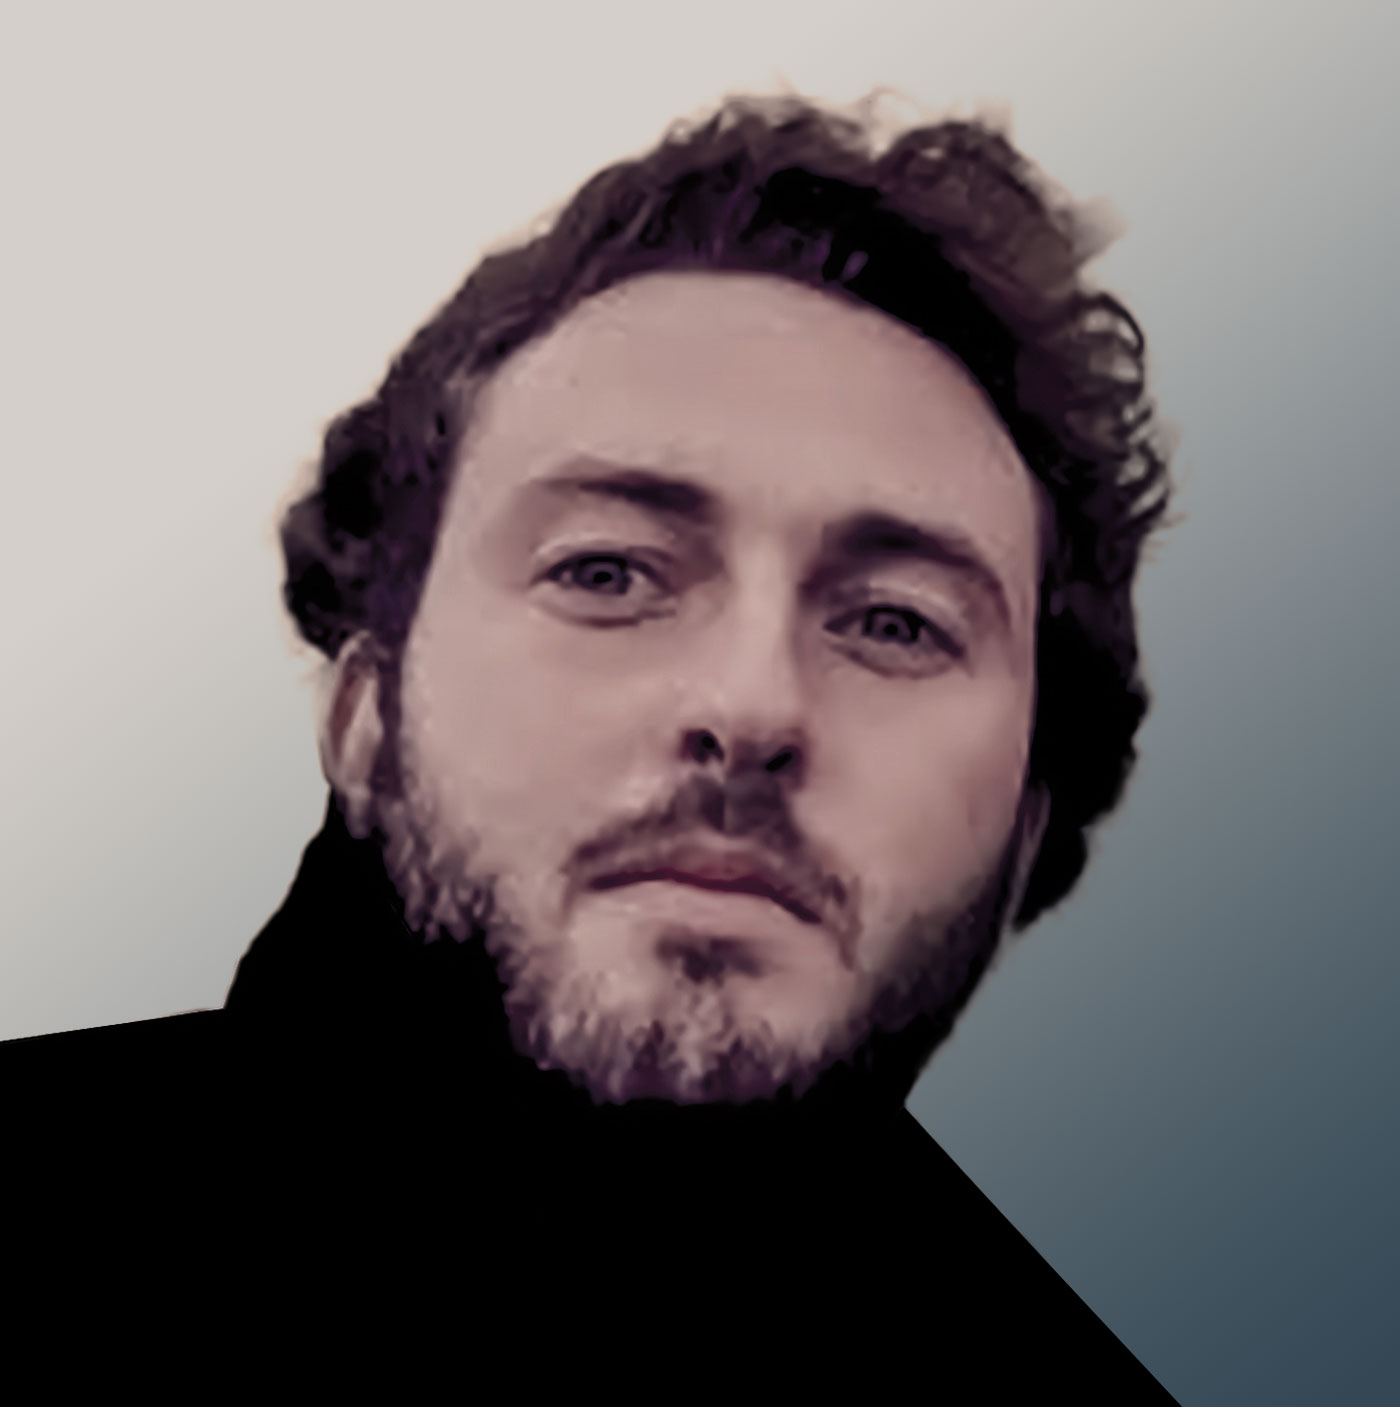 profile picture of gregory debacker